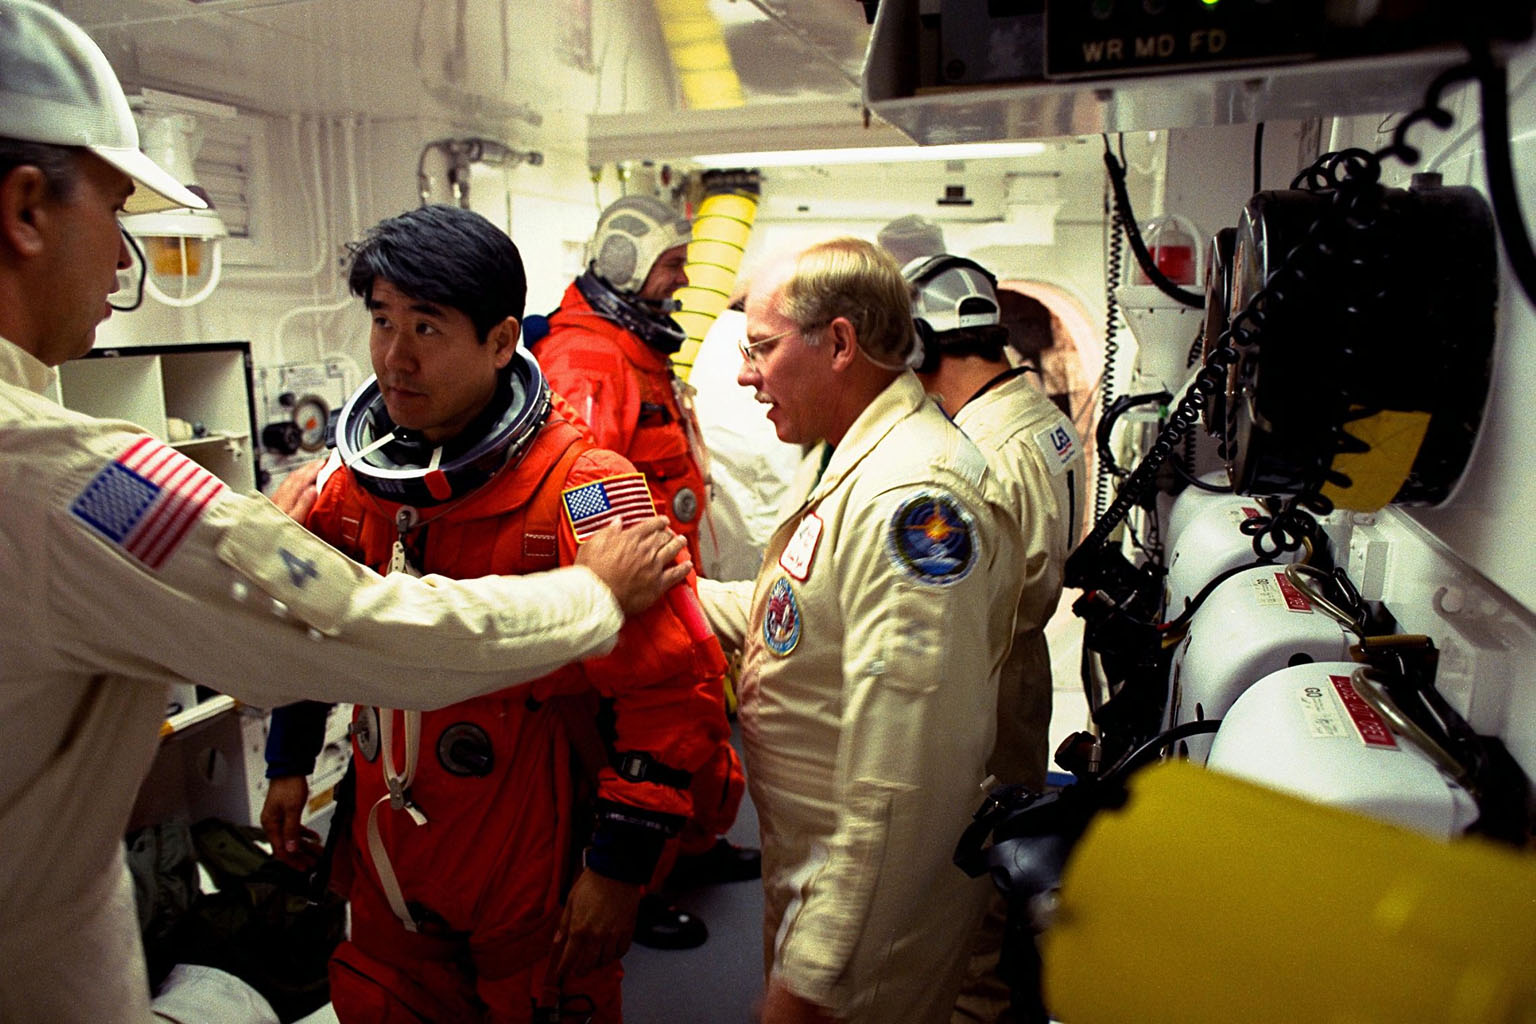 STS-87 Mission Specialist Takao Doi, Ph.D., of the National Space Development Agency of Japan, is assisted with his ascent and re-entry flight suit by Dave Law, USA mechanical technician, in the white room at Launch Pad 39B as Dr. Doi prepares to enter the Space Shuttle orbiter Columbia on launch day. At right wearing glasses is Danny Wyatt, NASA quality assurance specialist. STS-87 is the fourth flight of the United States Microgravity Payload and Spartan-201. The 16-day mission will include a spacewalk by Dr. Doi and Mission Specialist Winston Scott